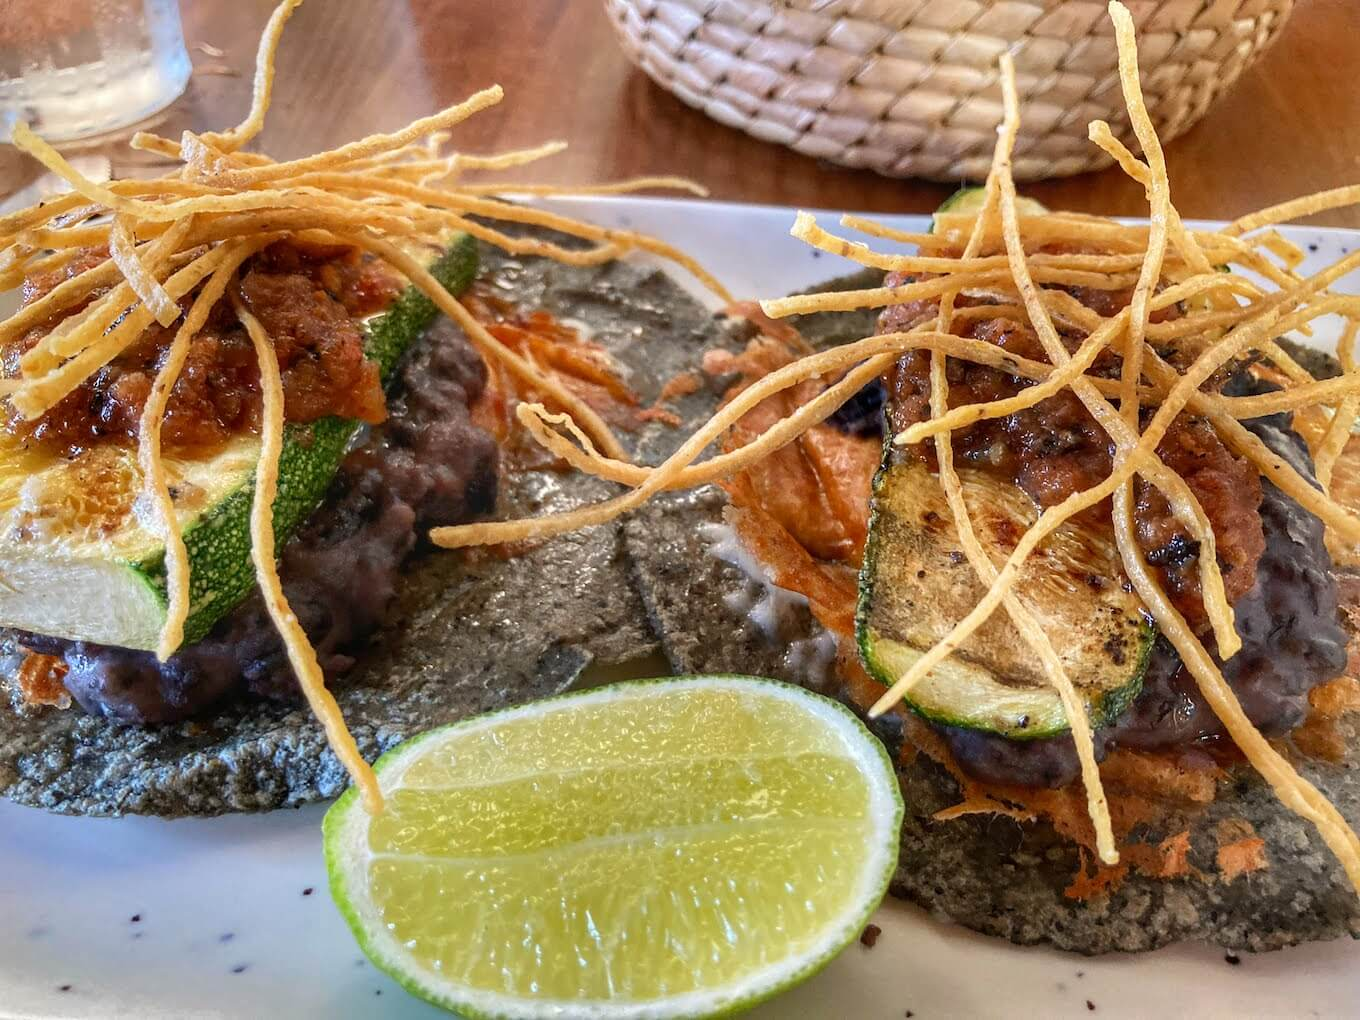 A plate of Mexican food at a restaurant. Food photography is a great example of still life photography.